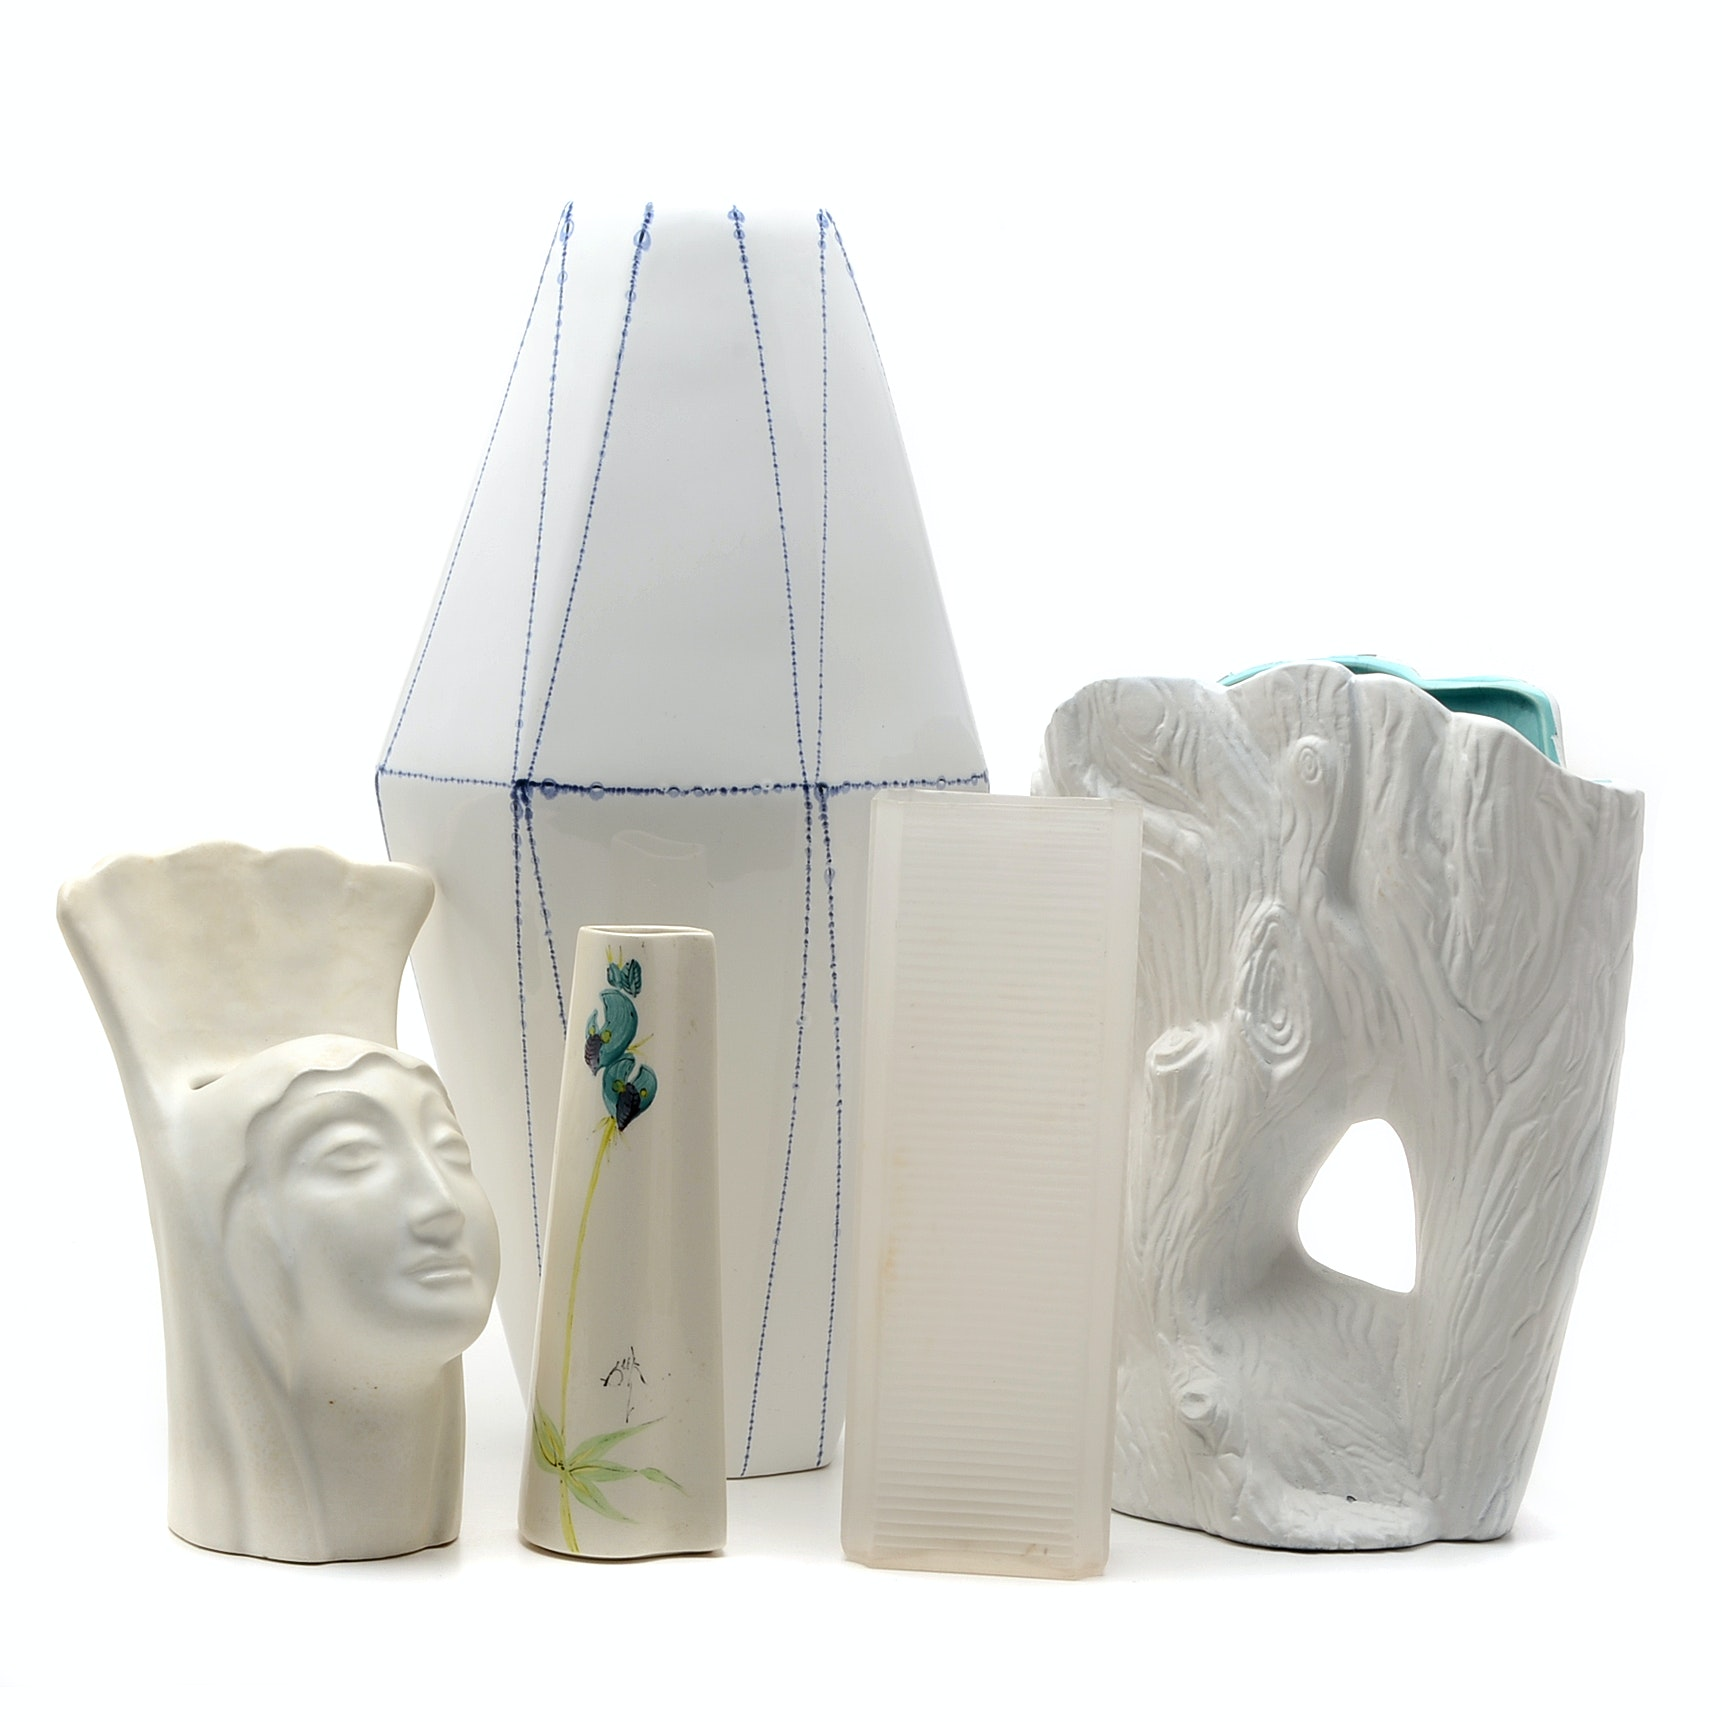 Grouping of White Tone Ceramic and Glass Vases